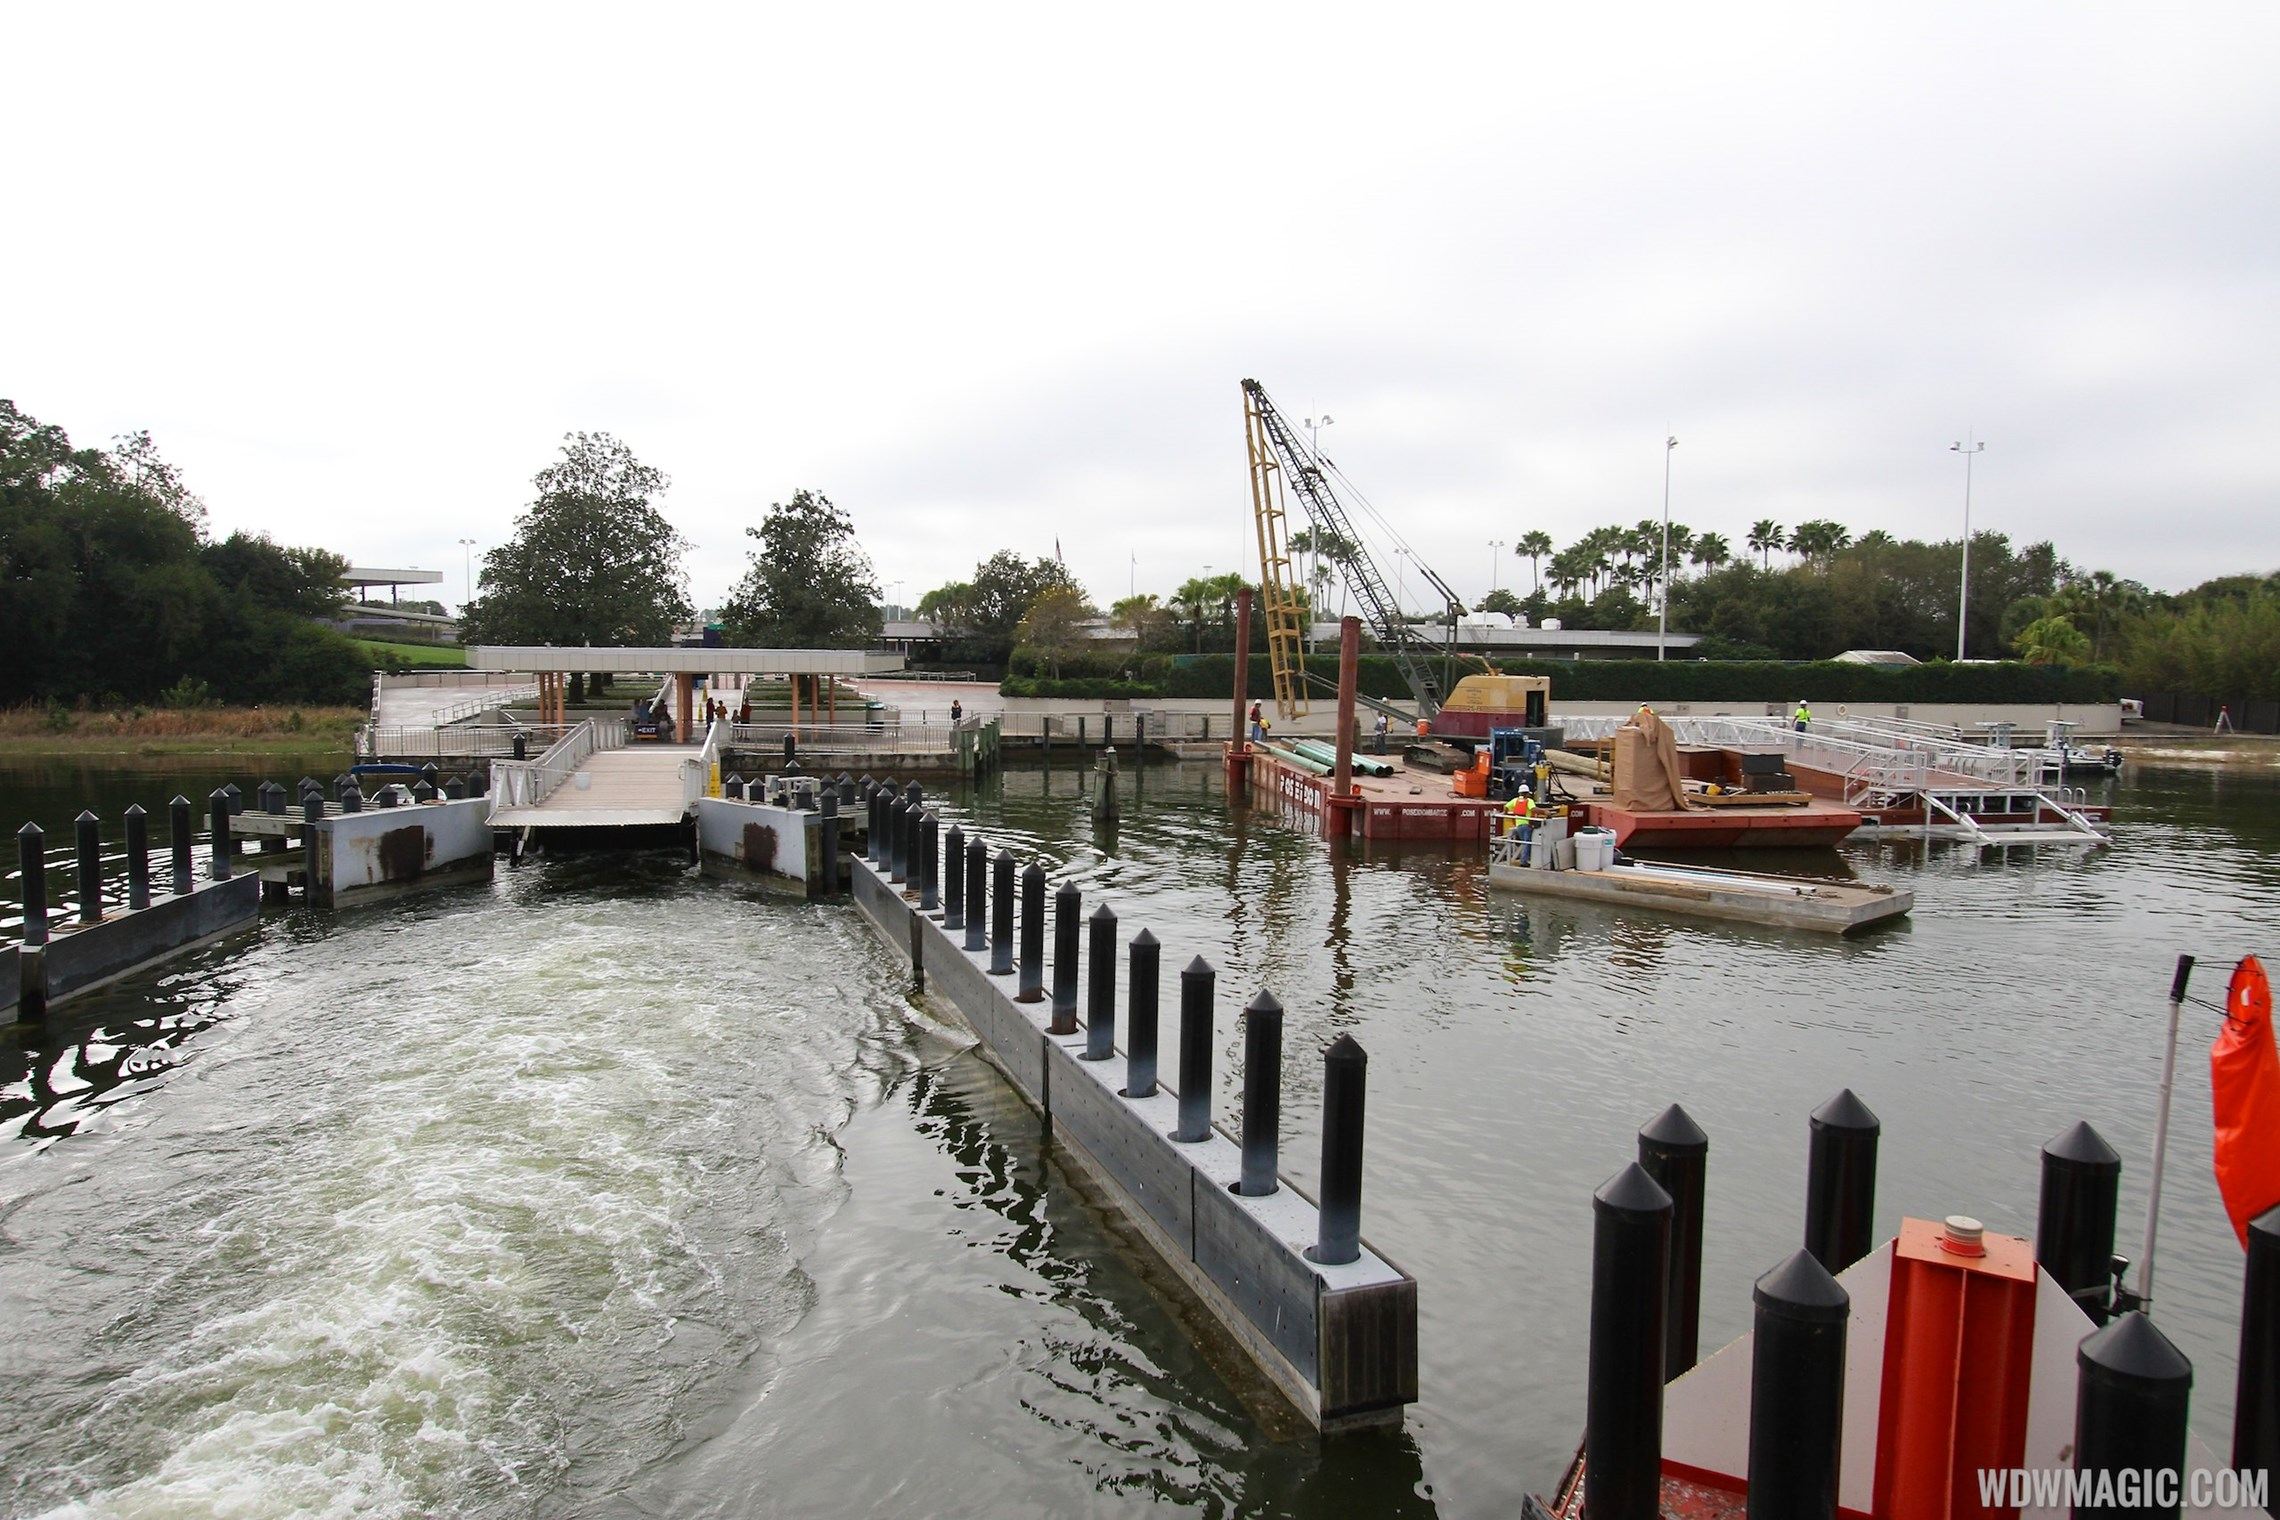 Second Ferry boat loading dock at Transportation and Ticket Center